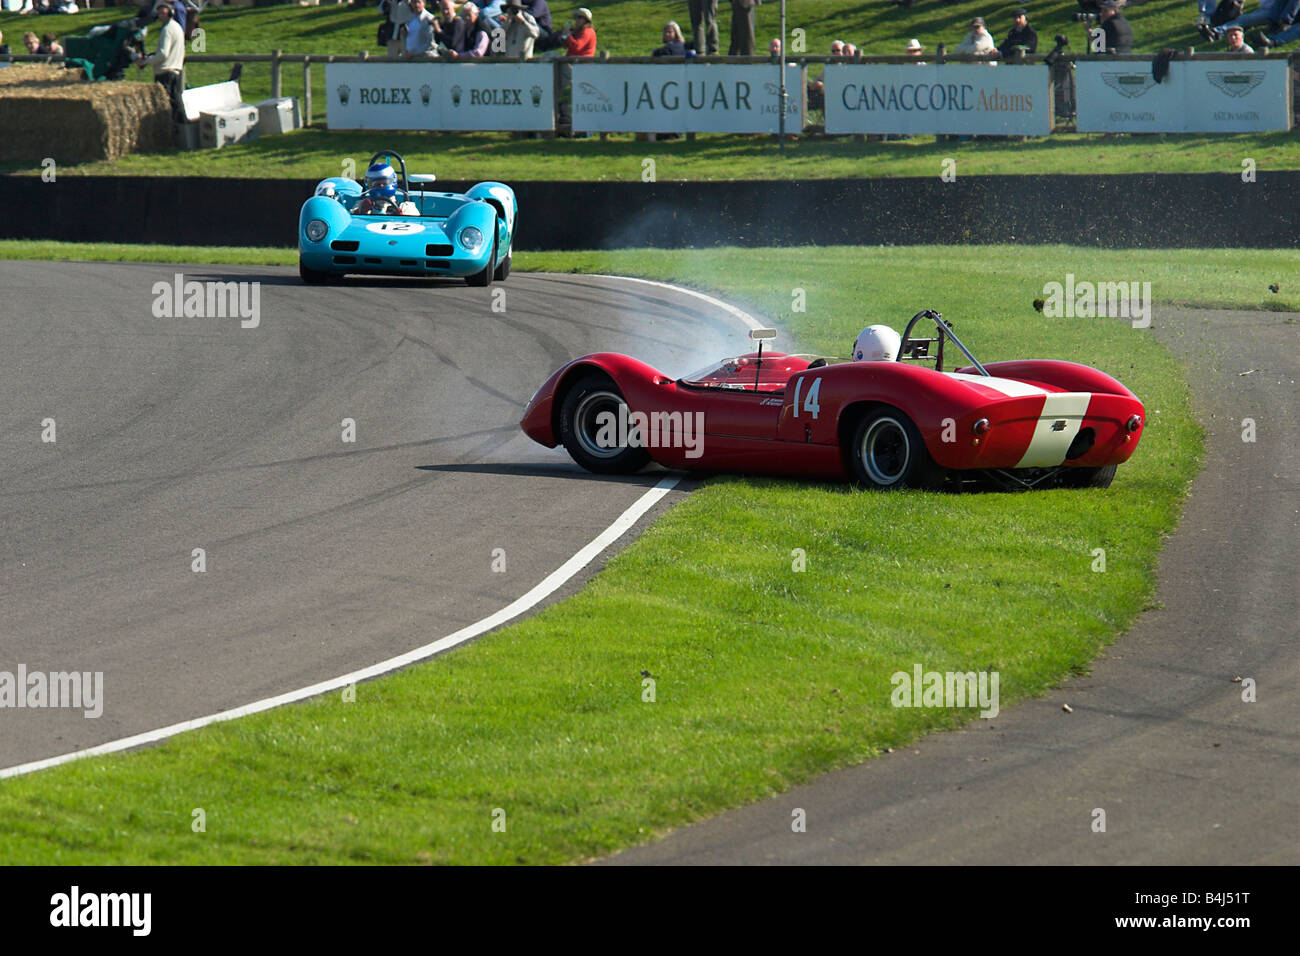 Two 1965 Elva BMW Cars Crashing at the Goodwood Revival Photo 2 of 5 showing the whole crash Stock Photo